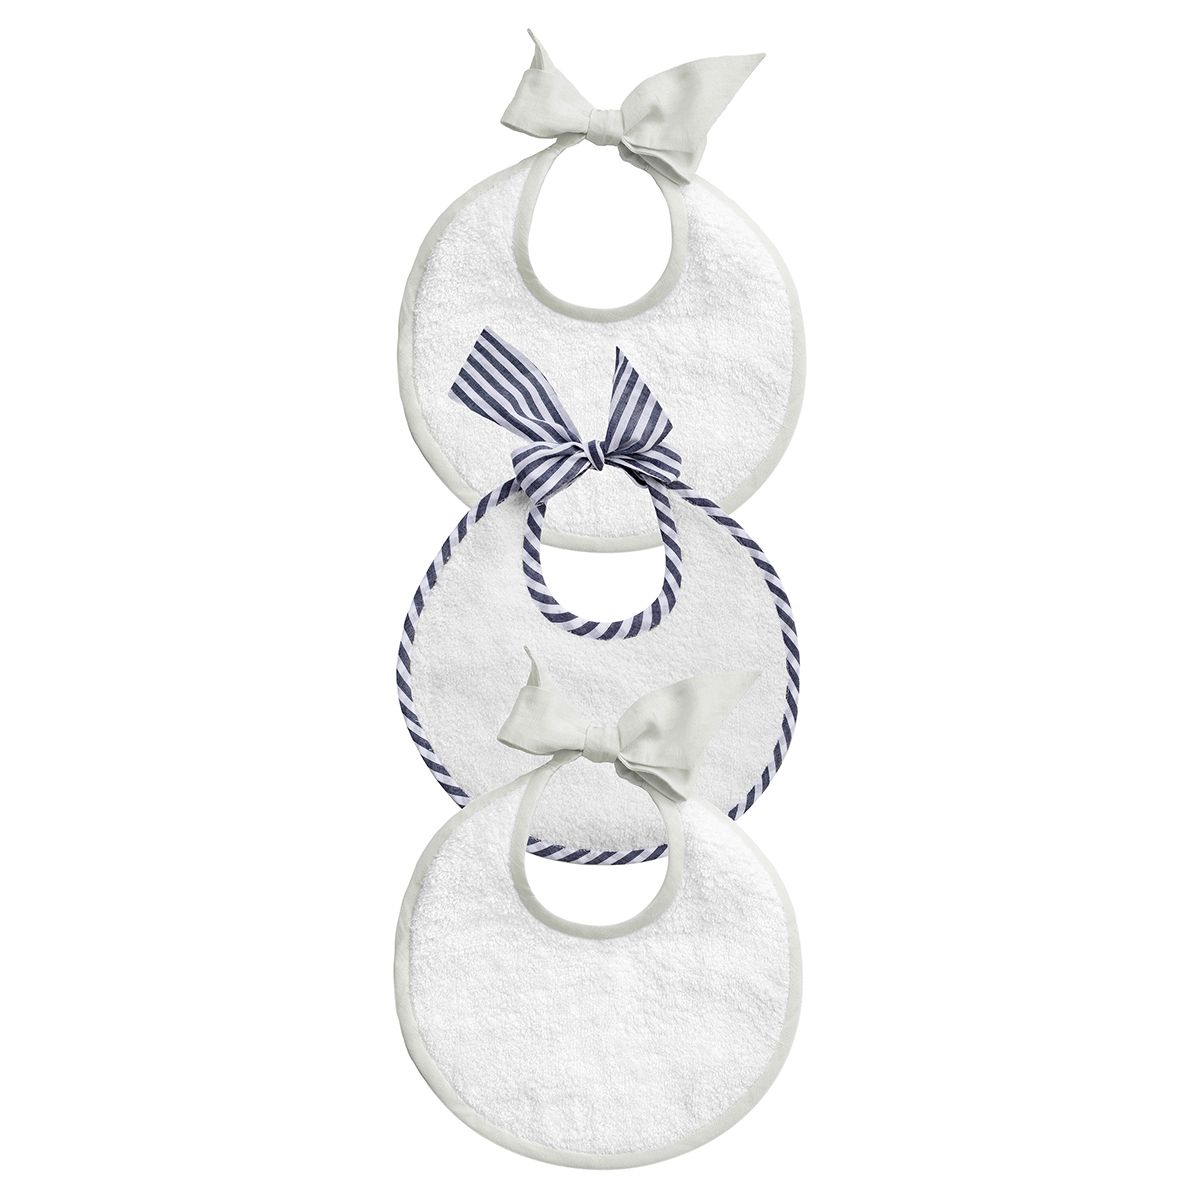 Louelle Newborn Bibs Gift Set of 3 Harbour Island & White FW19